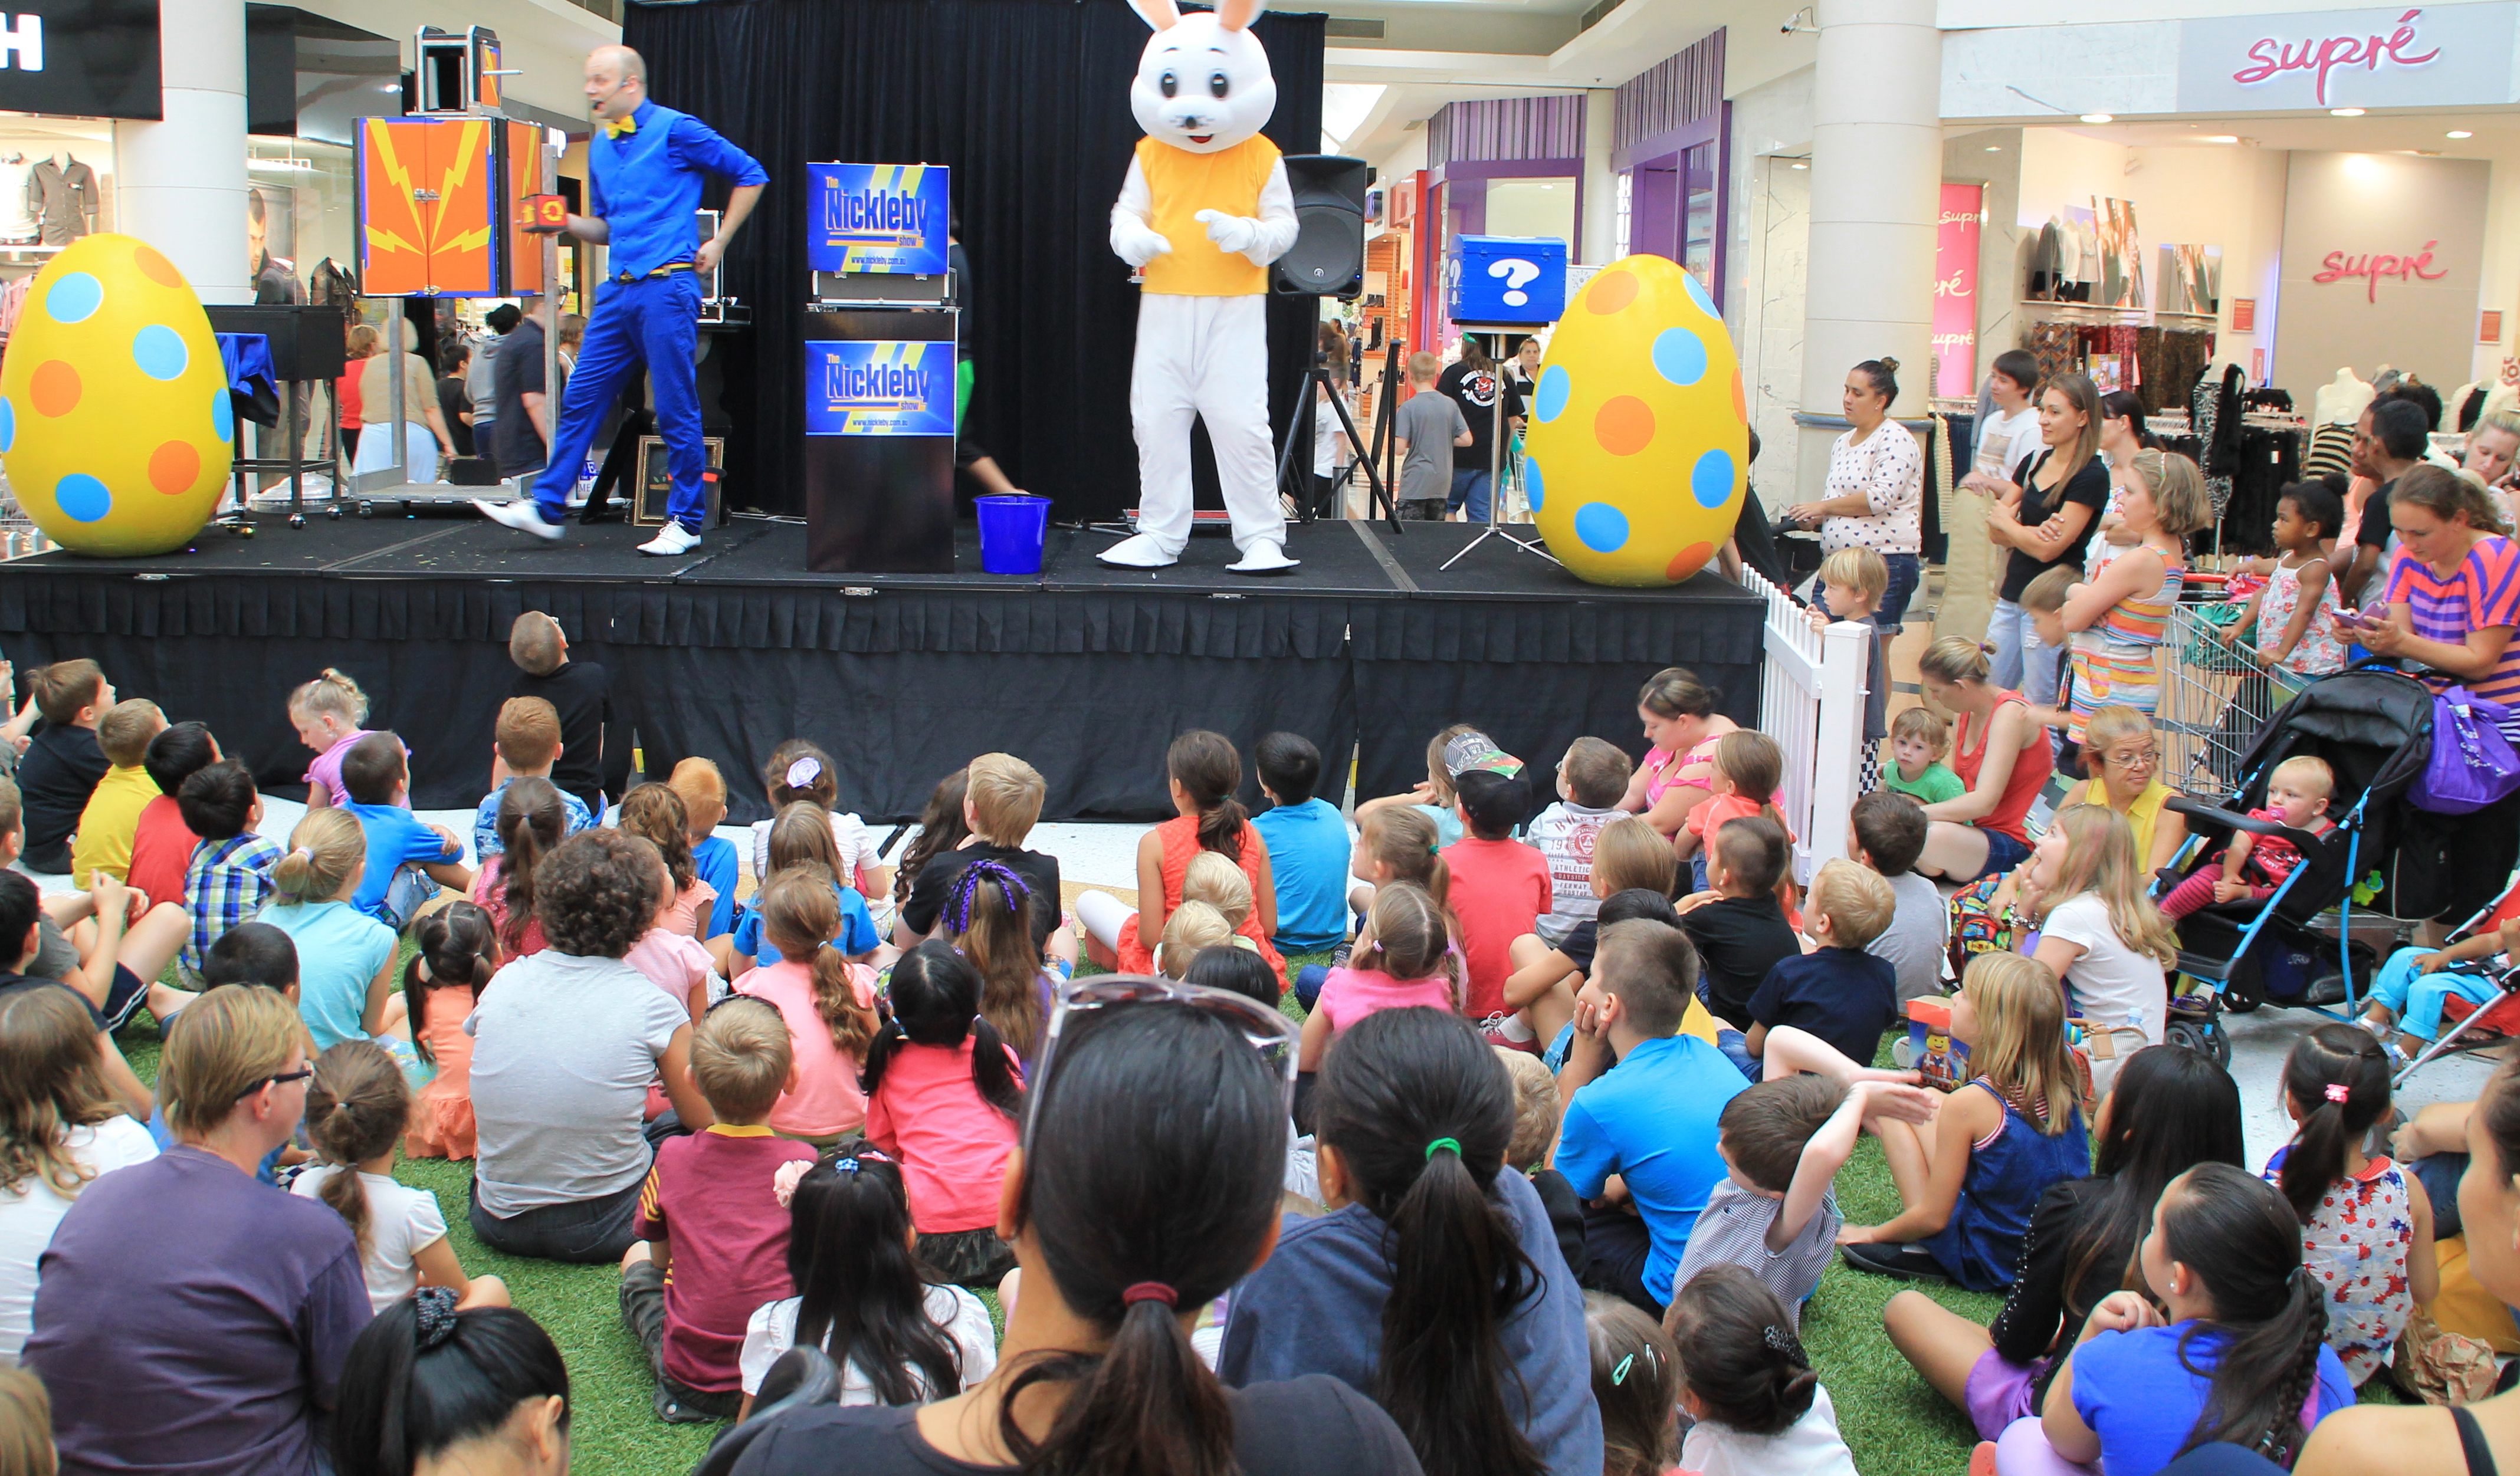 6ft Easter Rabbit Live stage show